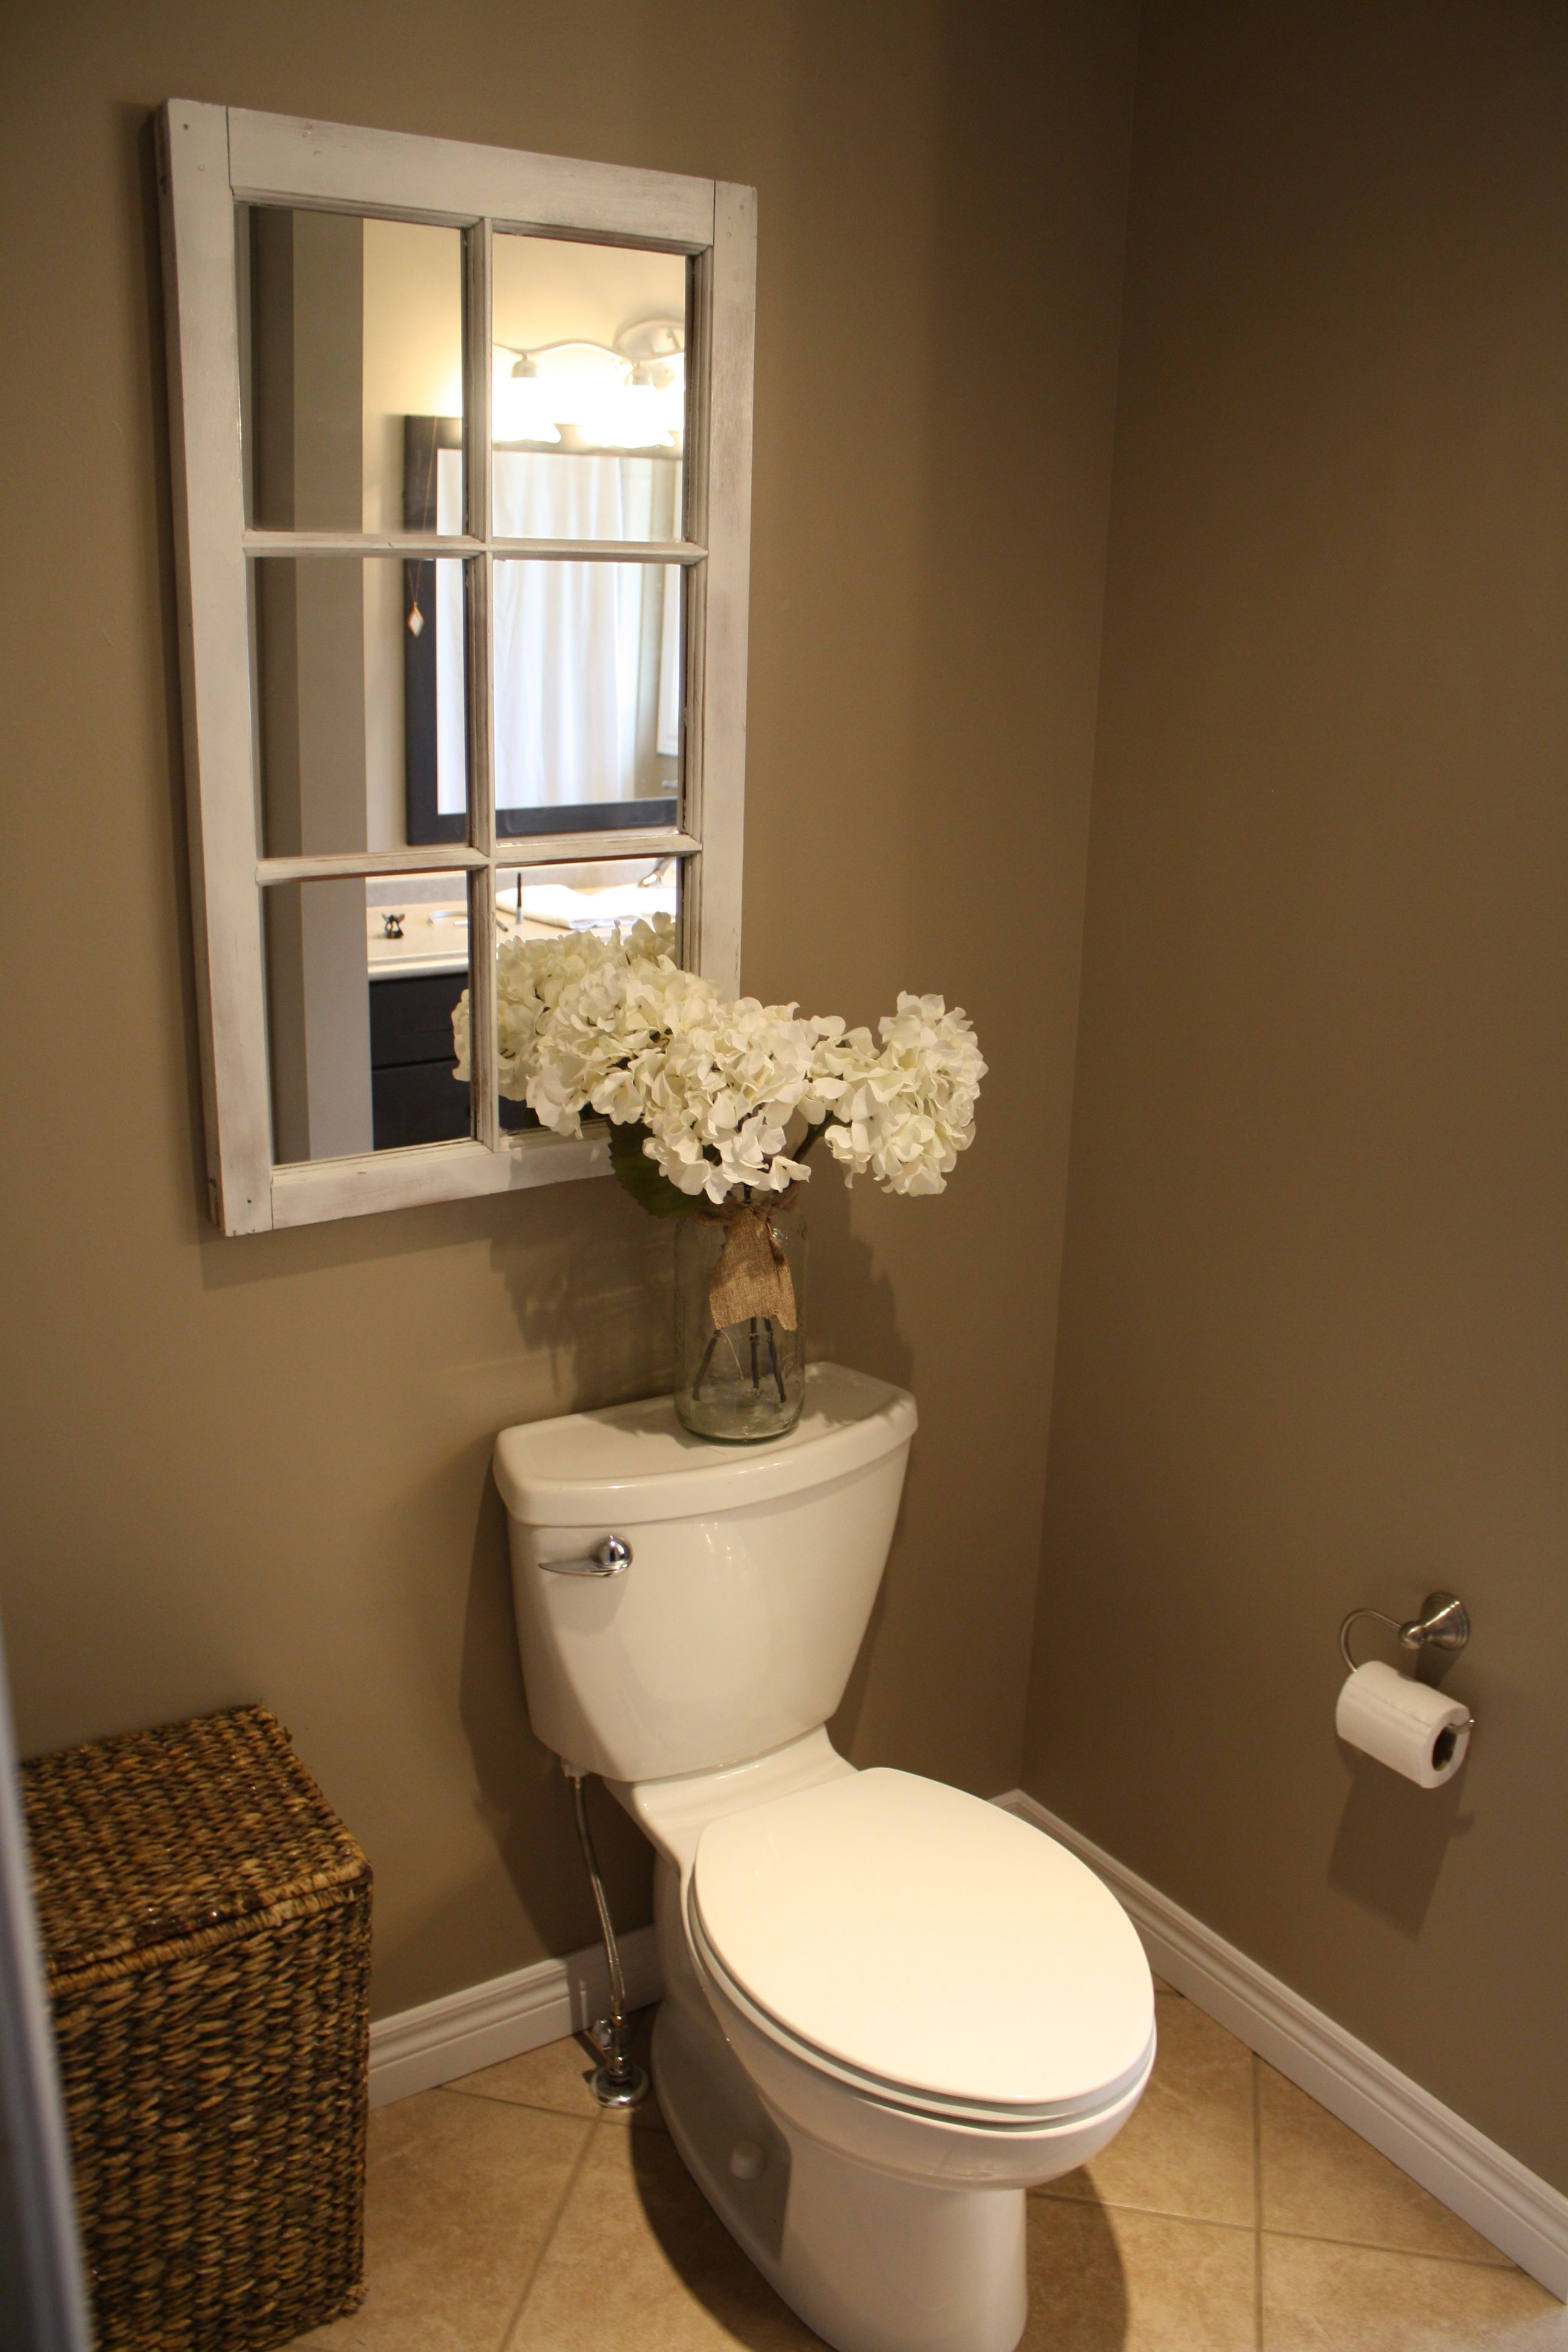 Bathroom window decor   half bathroom ideas that will impress your guests and upgrade